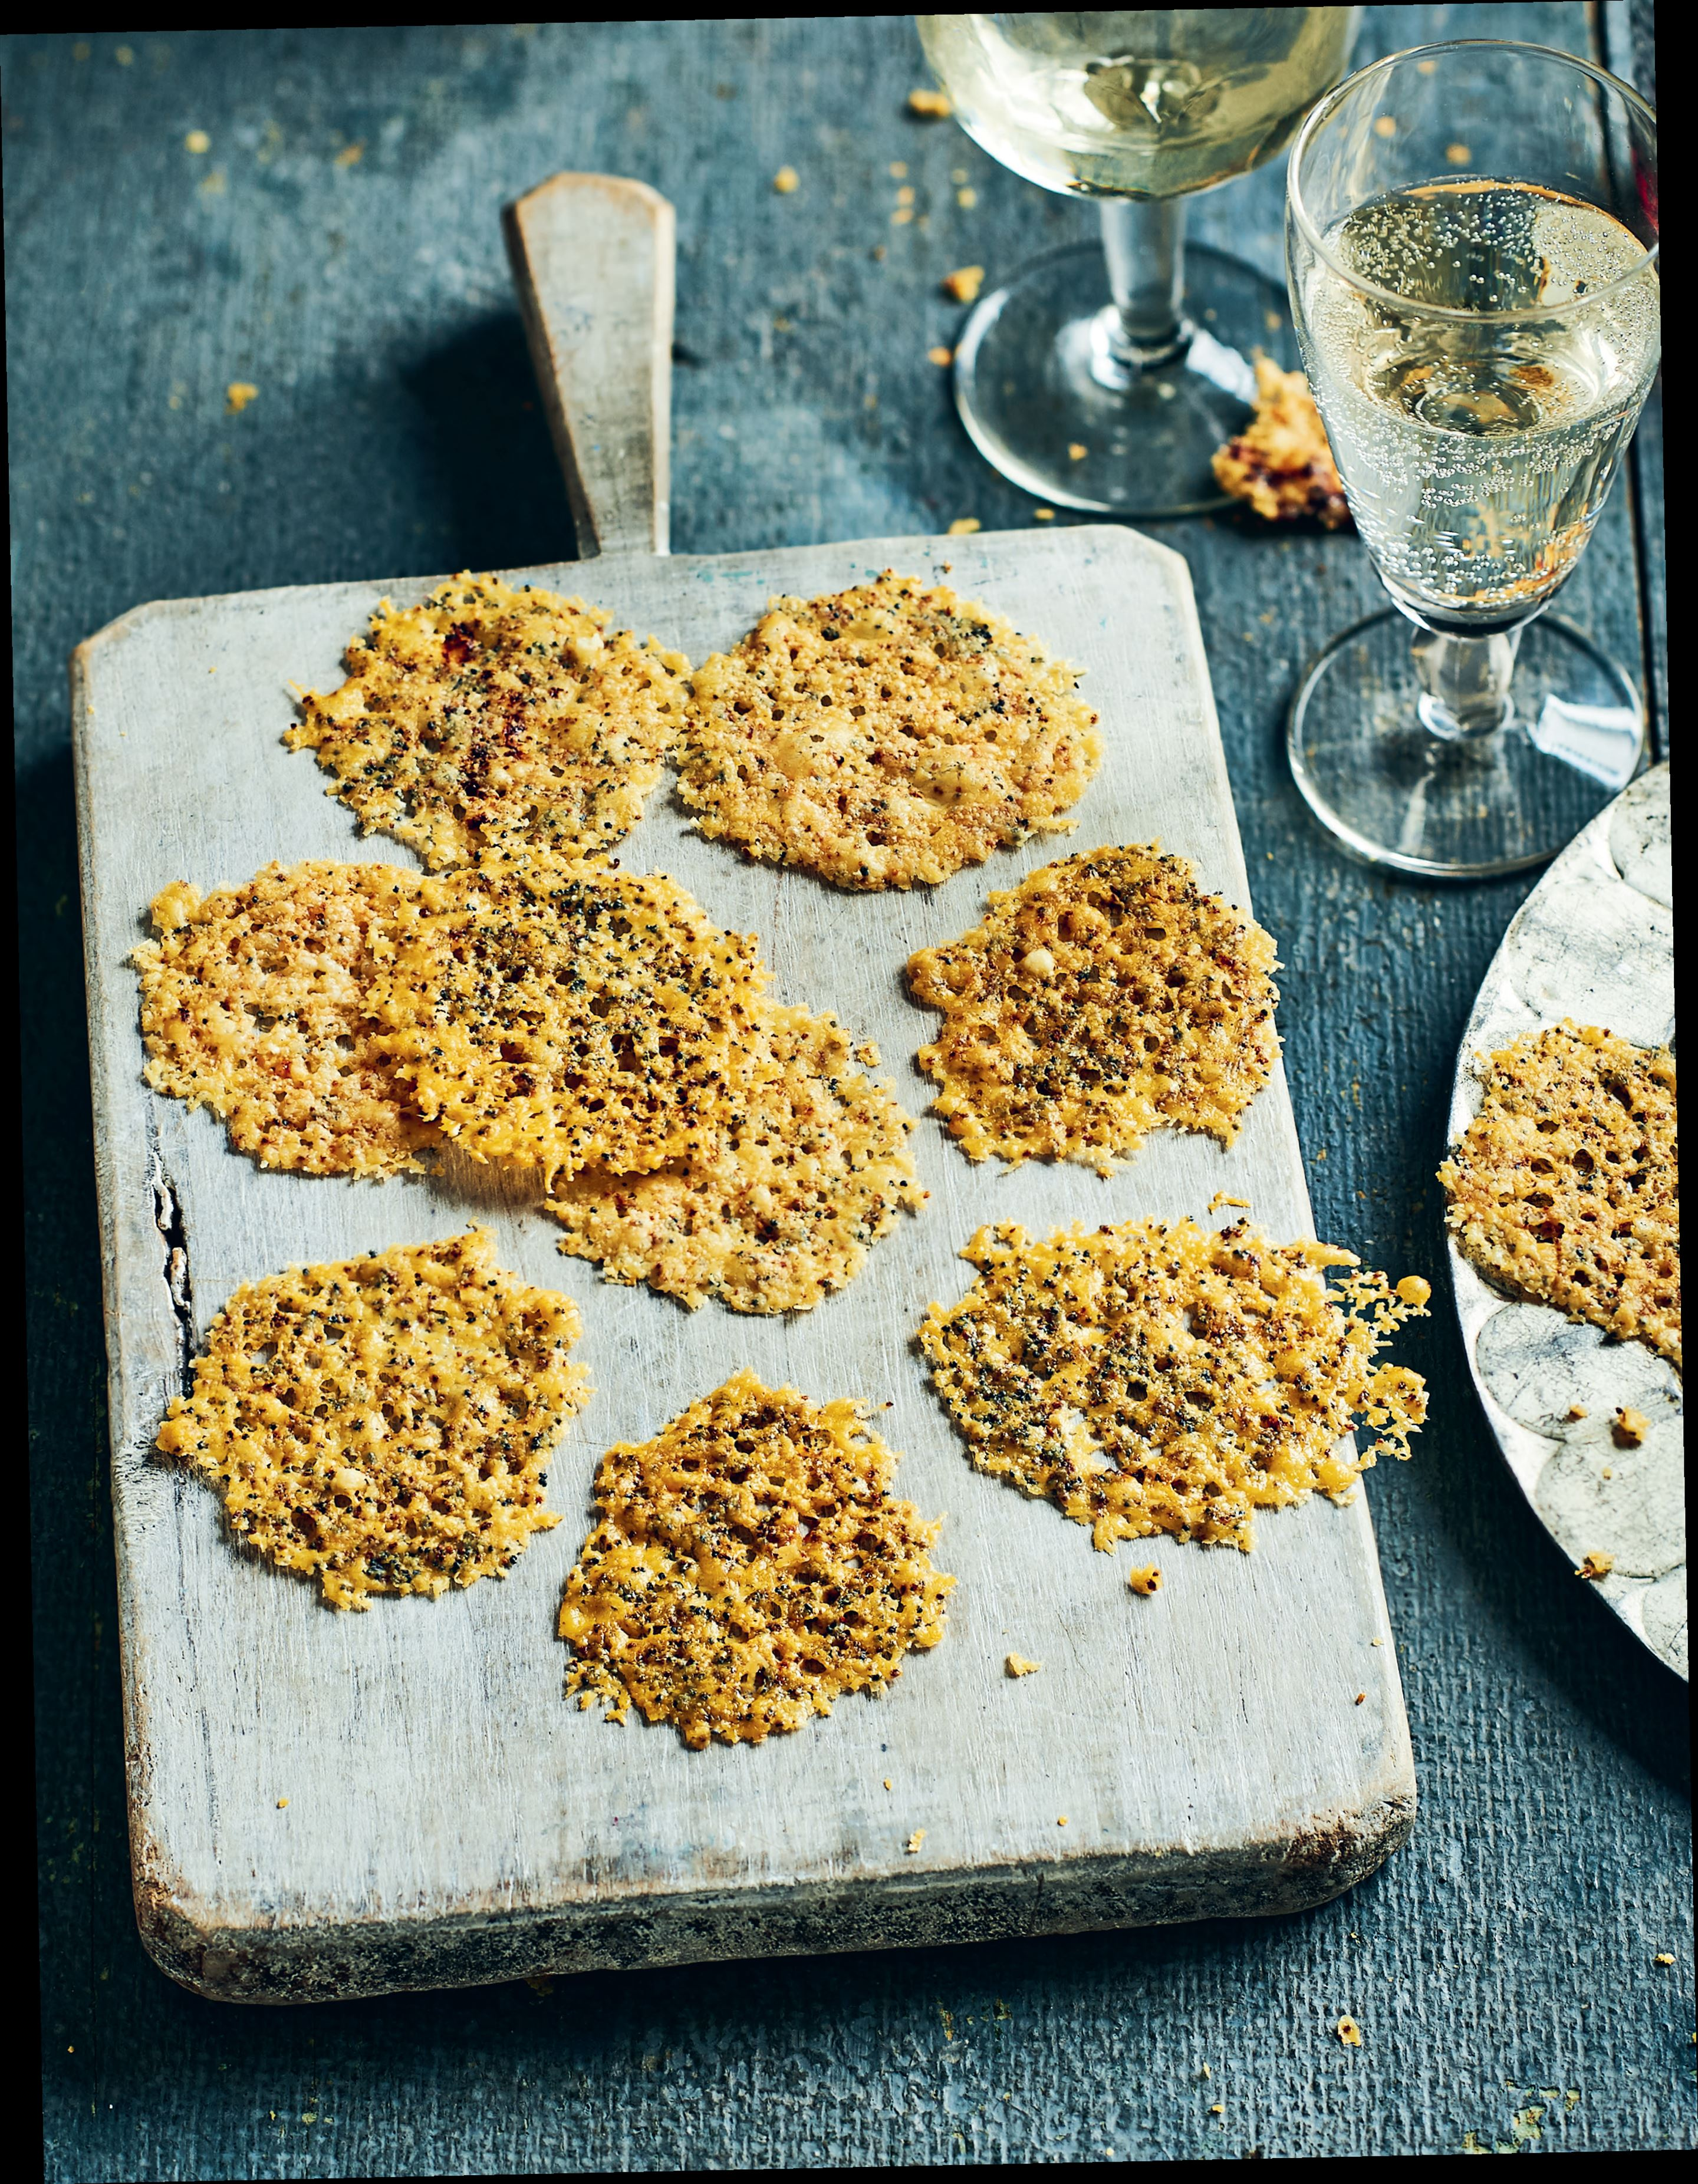 Parmesan, garlic and poppy seed crackers